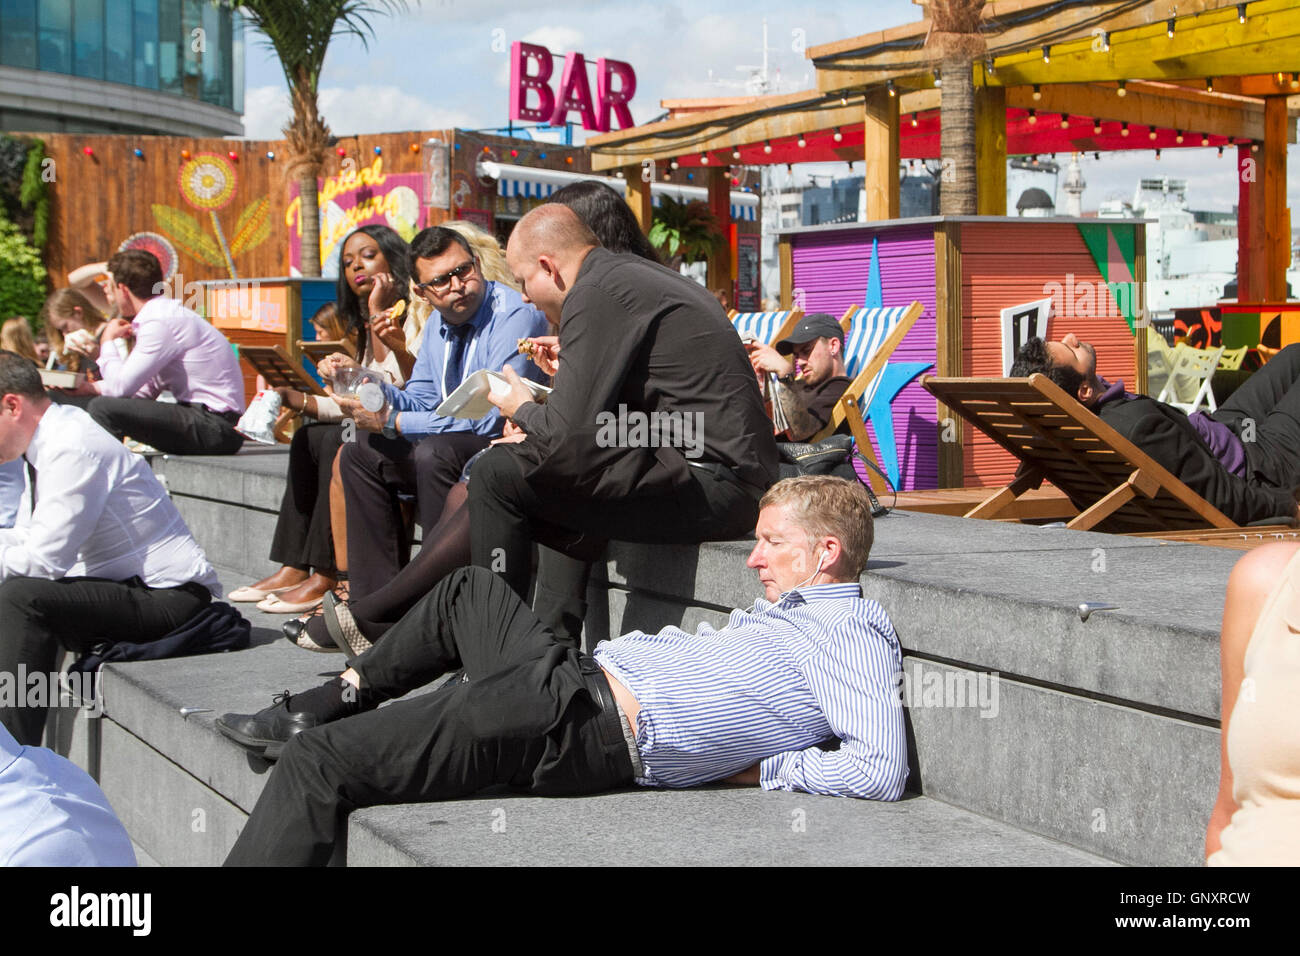 London, UK. 1st Sep, 2016. A man snoozes in the sunshine on London Riverside Credit:  amer ghazzal/Alamy Live News - Stock Image